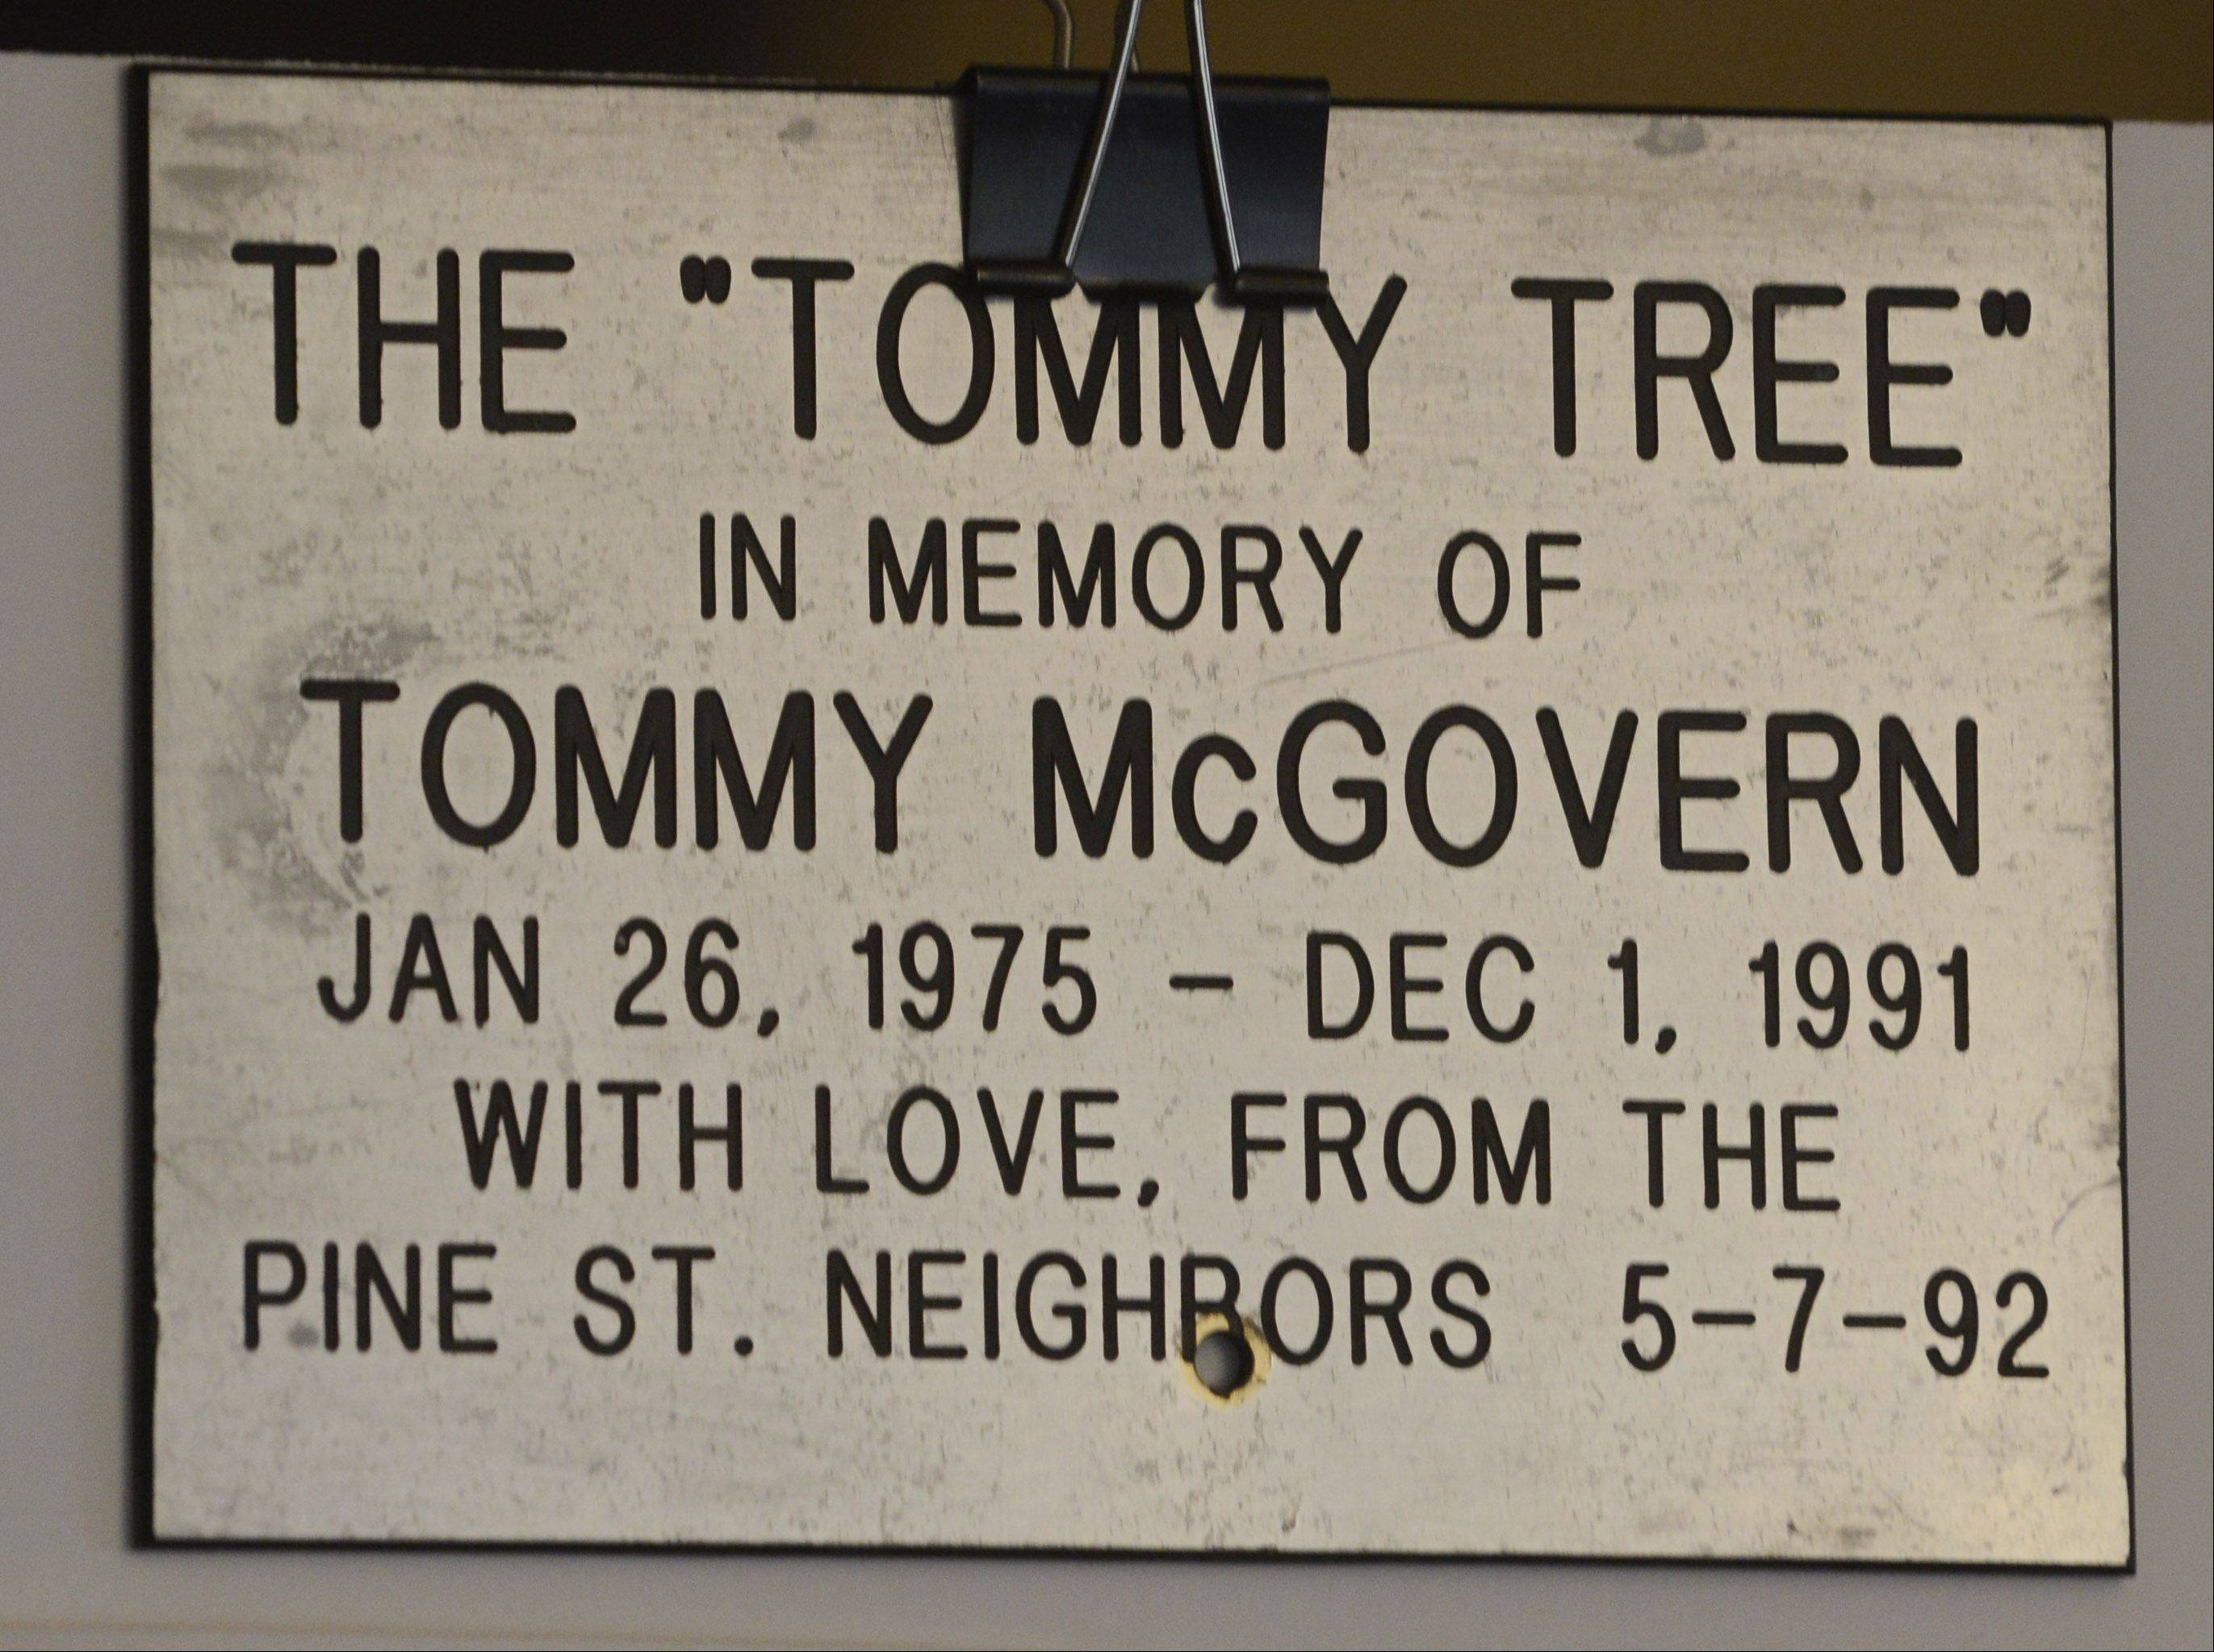 This plaque was placed beneath a tree in memory of Tommy McGovern. Now flush, full and tall, the tree will be lit for Christmas in a ceremony tonight that unites the already close-knit neighborhood in Mount Prospect.